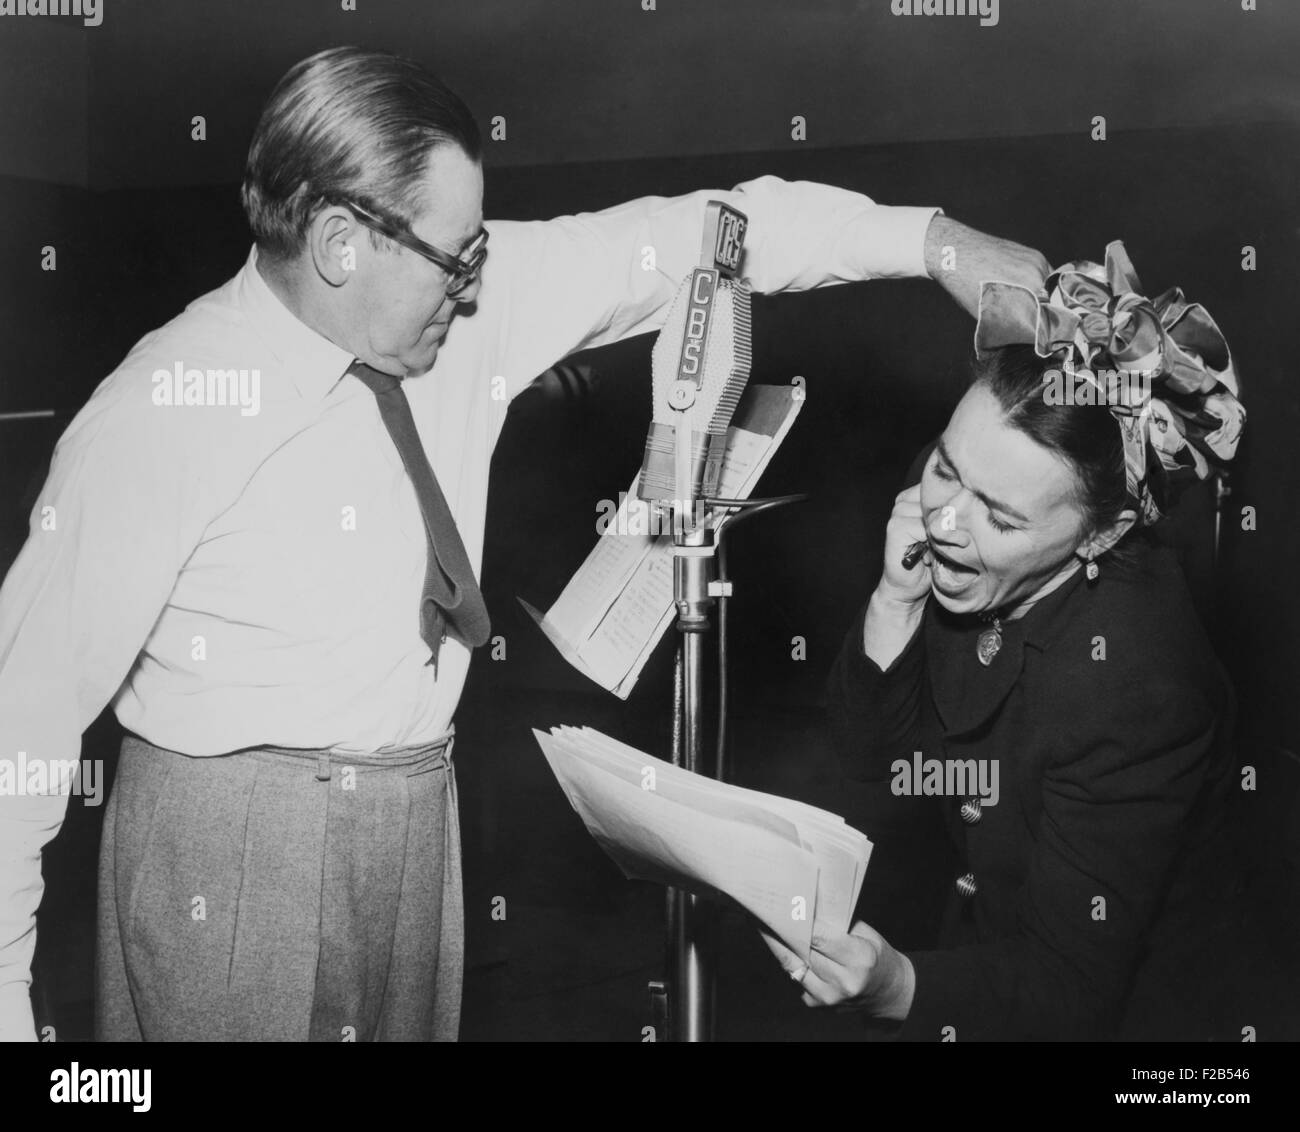 Herbert Marshall striking a blow, murdering his 'wife', in a radio play, 'Back for the Holidays'. - Stock Image